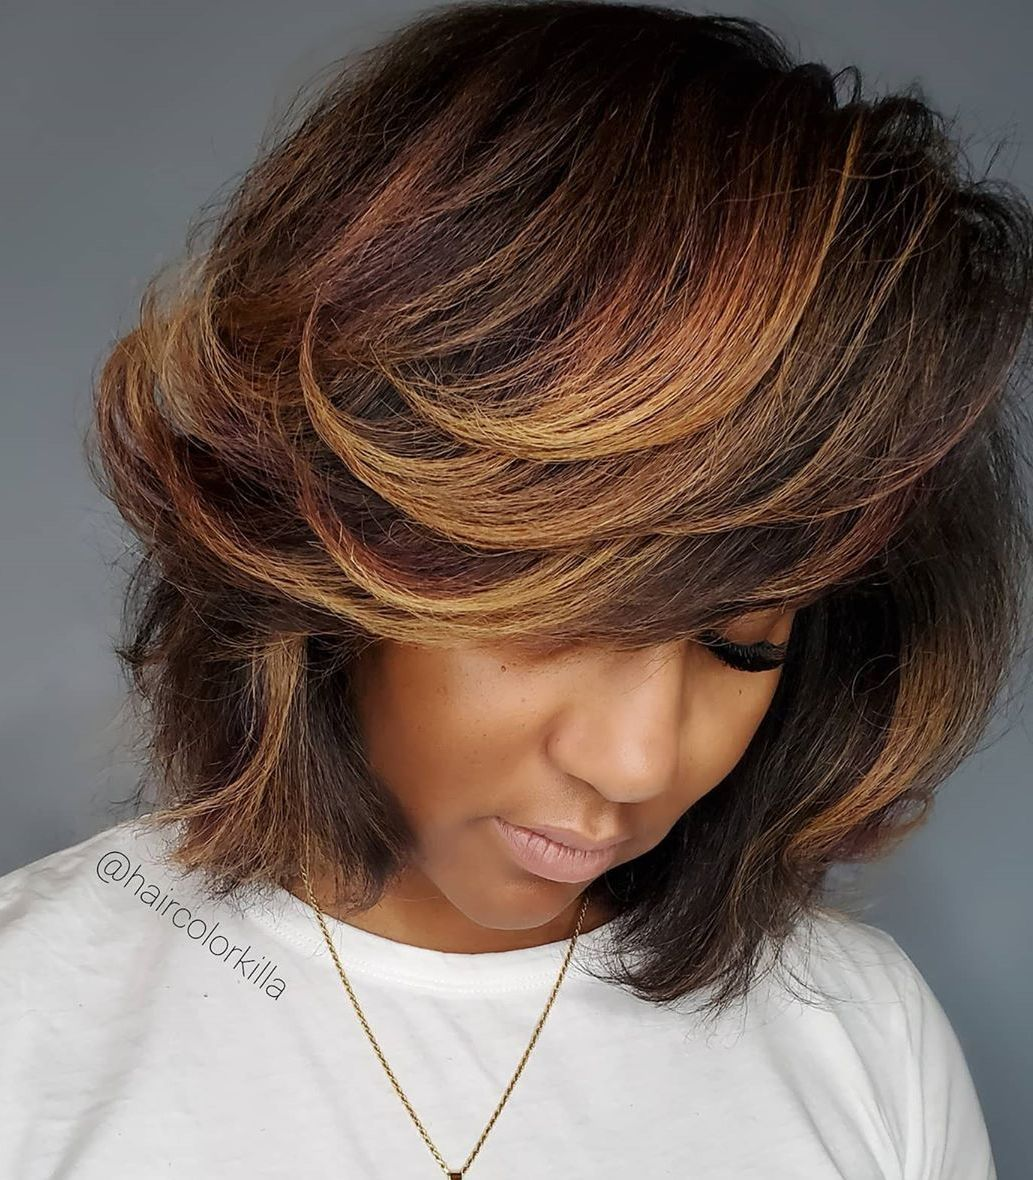 Hair Colors For Dark Skin To Look Even More Gorgeous Hair Adviser In 2020 Hair Color For Dark Skin Brown Hair For Dark Skin Brown Hair Dark Skin